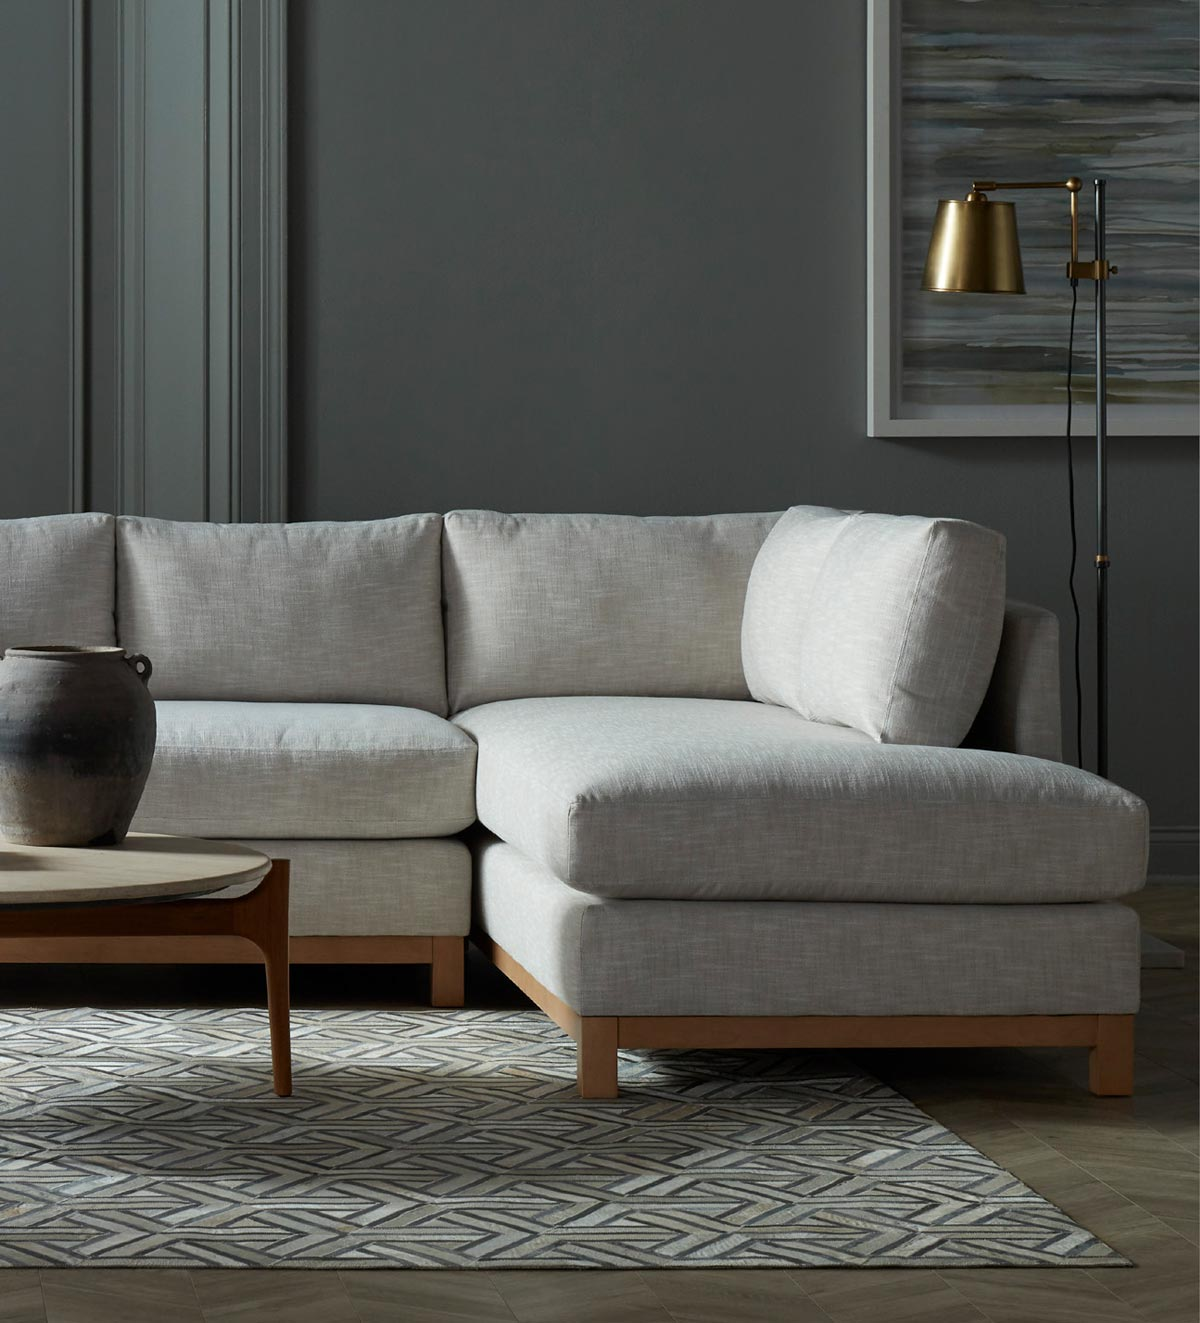 Living room setting with Sofa and Sectionals